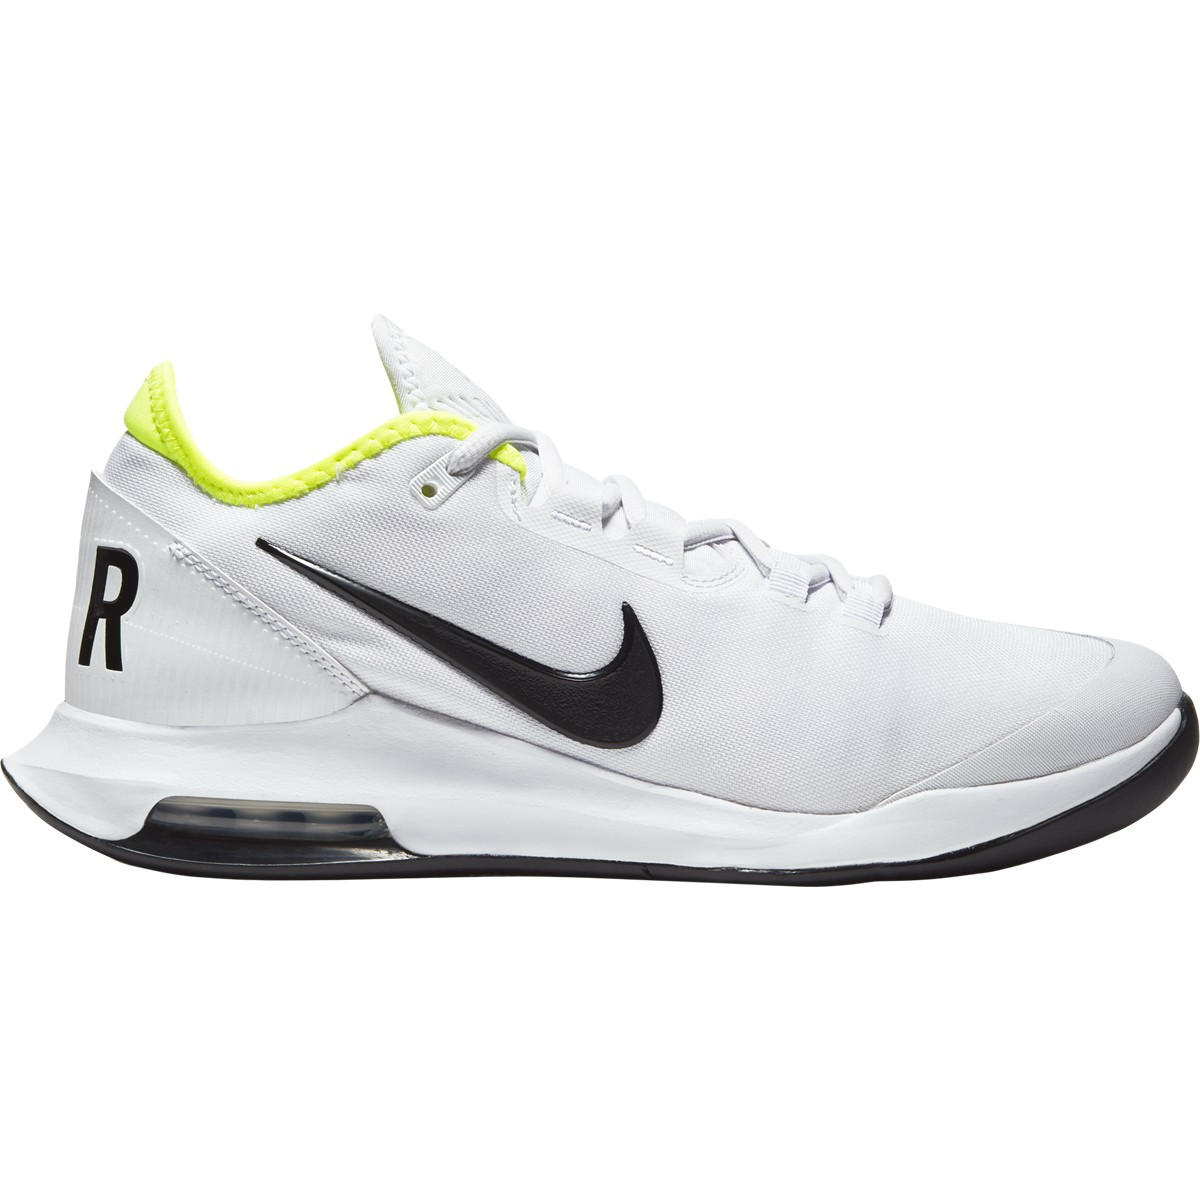 nike chaussures blanche